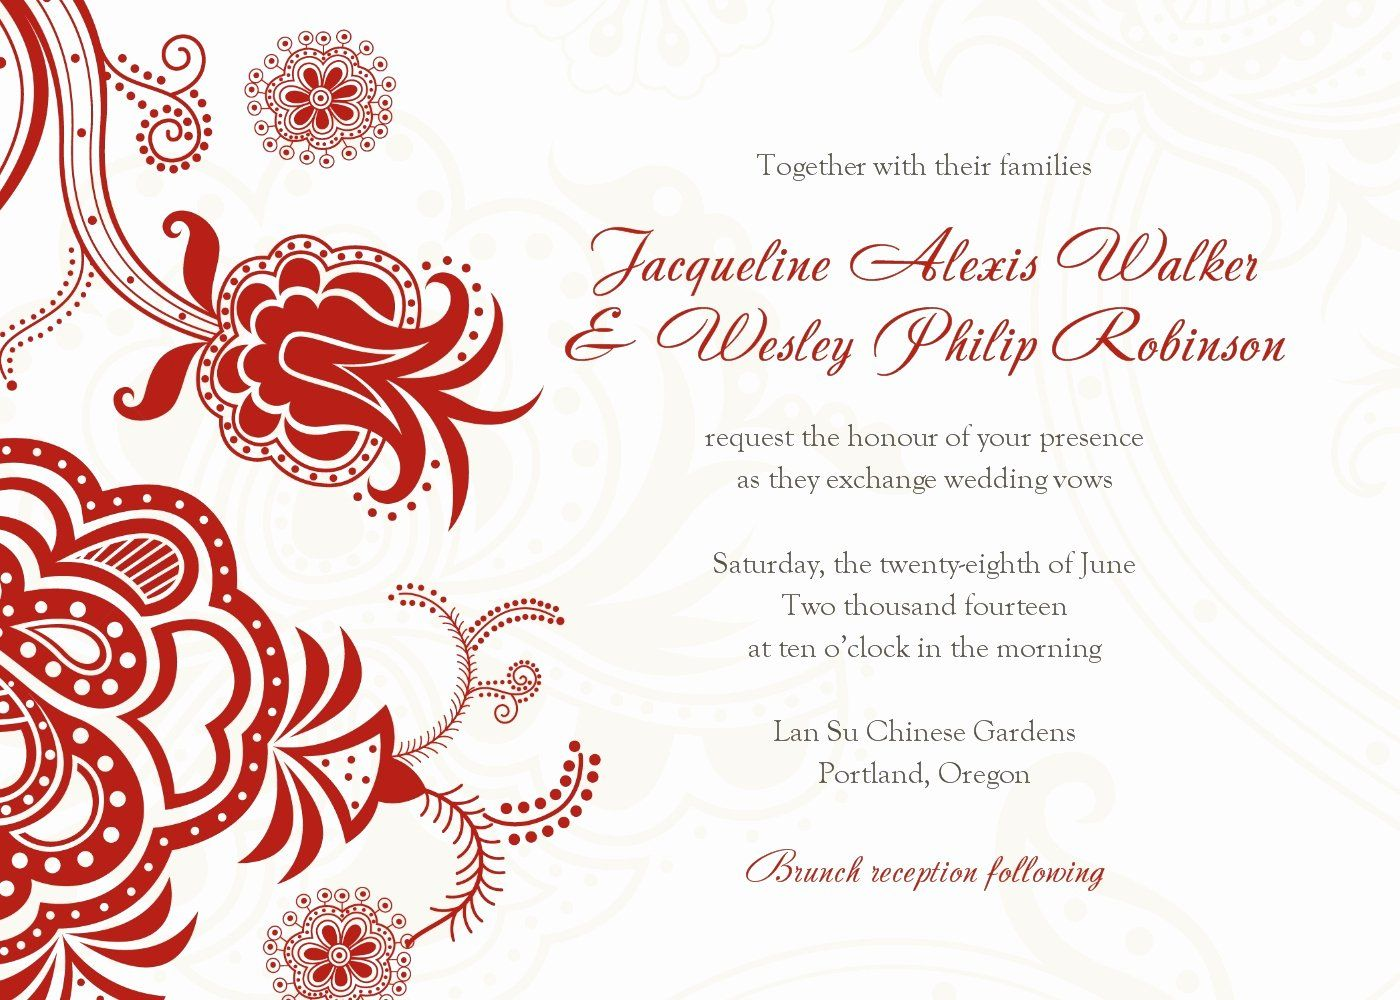 Chinese Wedding Invitation Wordings Awesome Chinese Wedding Wedding Invitations Printable Templates Free Wedding Invitation Templates Free Wedding Invitations